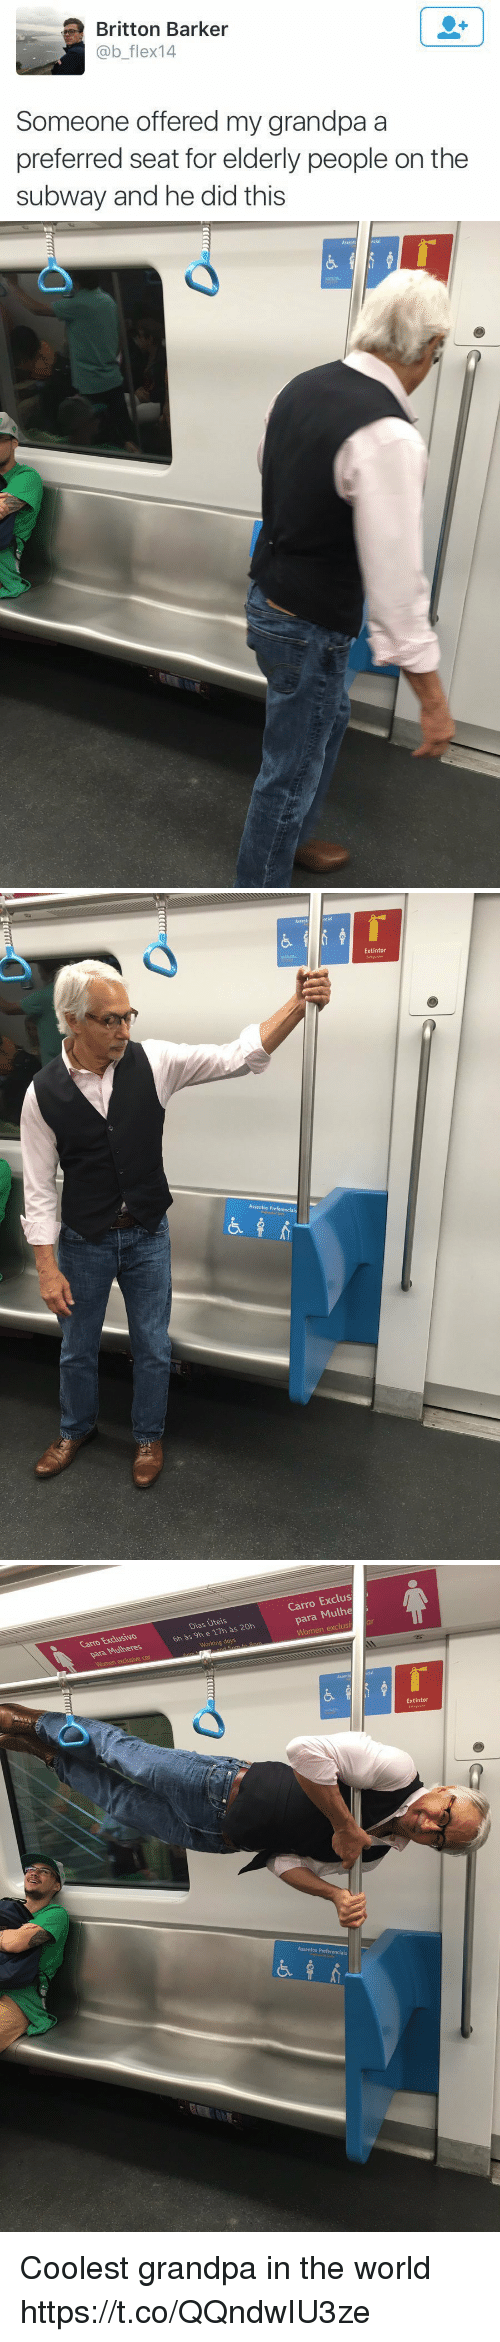 Flexing, Subway, and Grandpa: a Britton Barker  @b flex 14  Someone offered my grandpa a  preferred seat for elderly people on the  subway and he did this   Assentos Preferenciais  Extintor   Uteis  20h  Dias, as 6h as 9h 17h Working days  Carro  Exclus  para  Mulhe  Women exclus  Assentos Preferenciais  Extintor Coolest grandpa in the world https://t.co/QQndwIU3ze